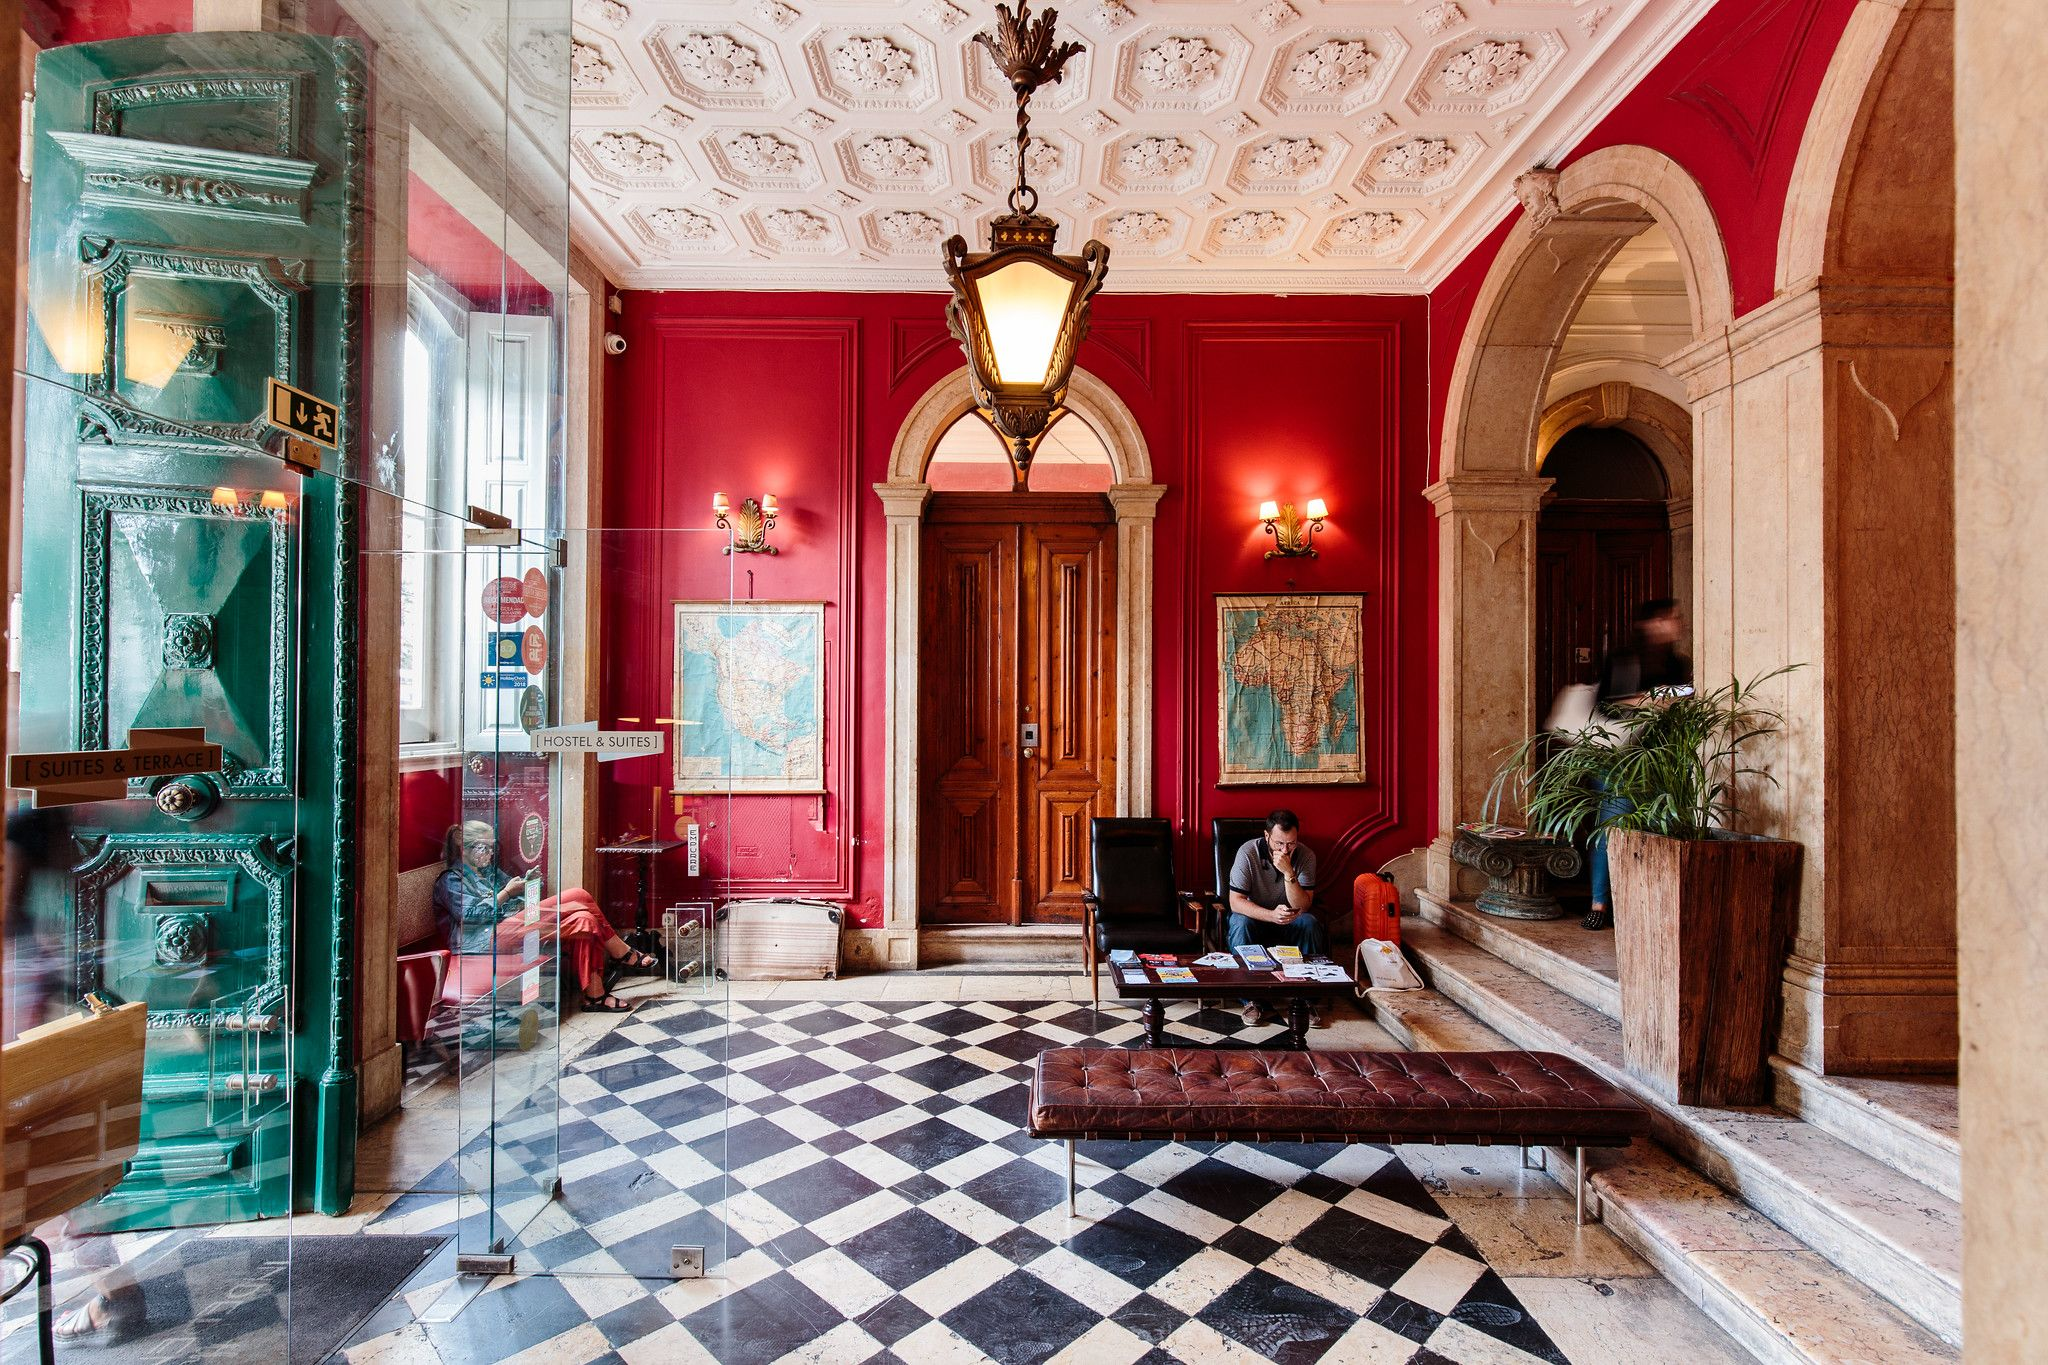 This £13-a-night Lisbon hostel is more like a palace